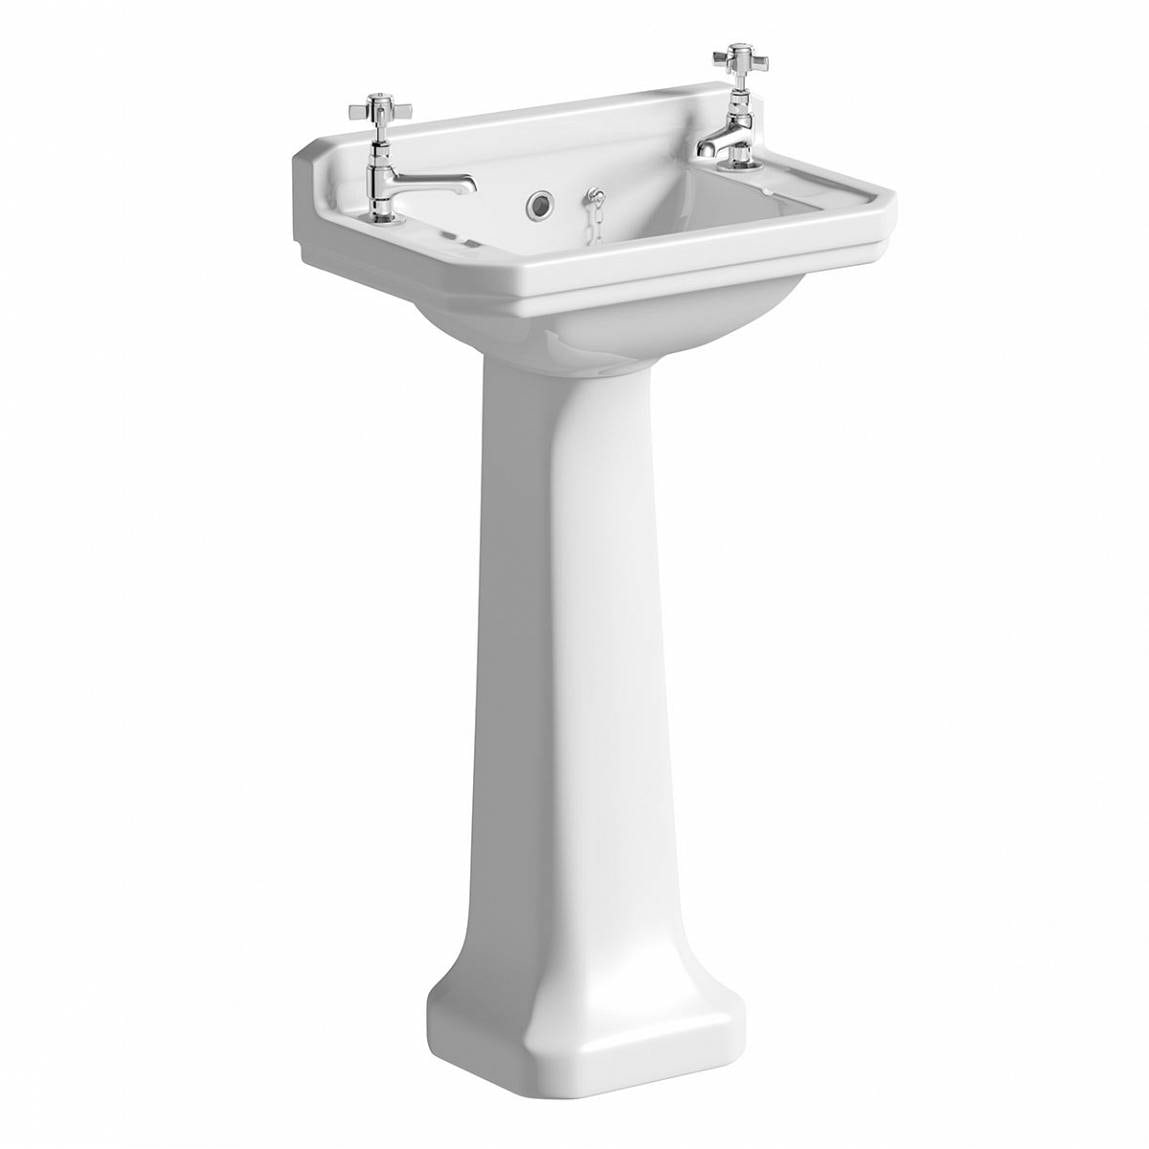 The Bath Co. Camberley 2 tap hole full pedestal basin 500mm with waste